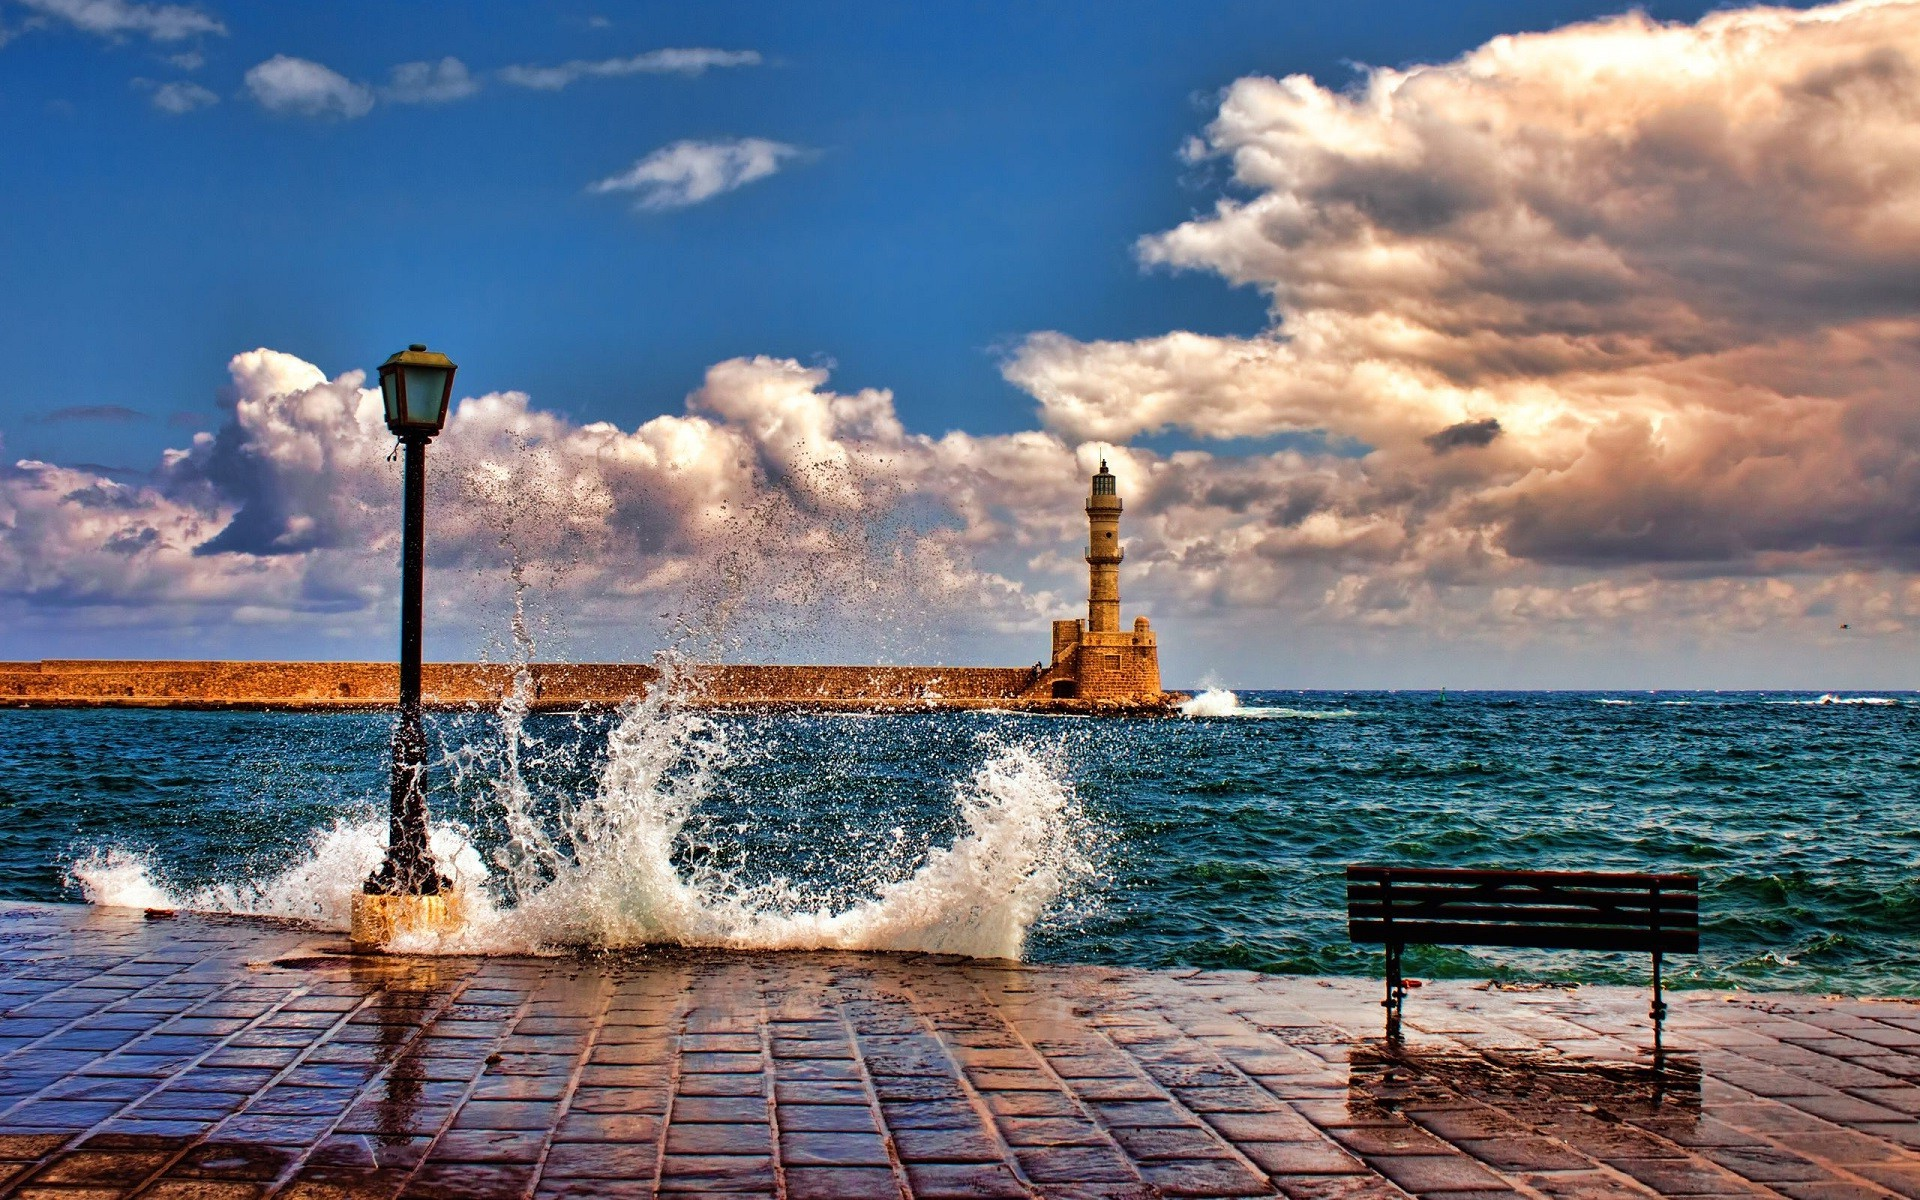 Nice Anime Wallpaper Nature Architecture Landscape Sea Waves Lighthouse